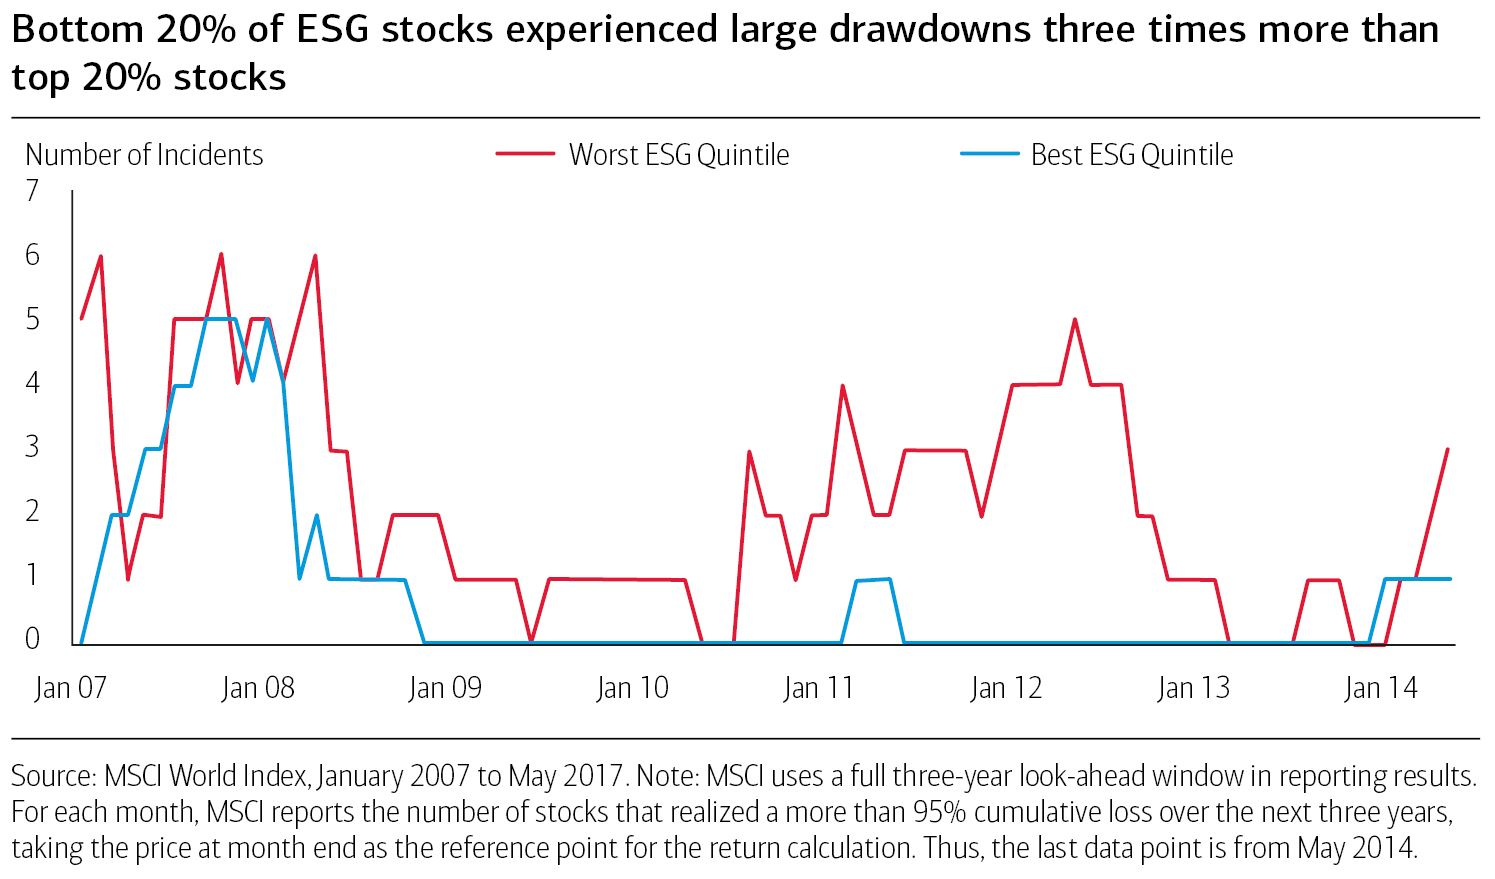 Line graph comparing the worst ESG quintile and the best ESG quintile from Januray 2007 to May 2017.